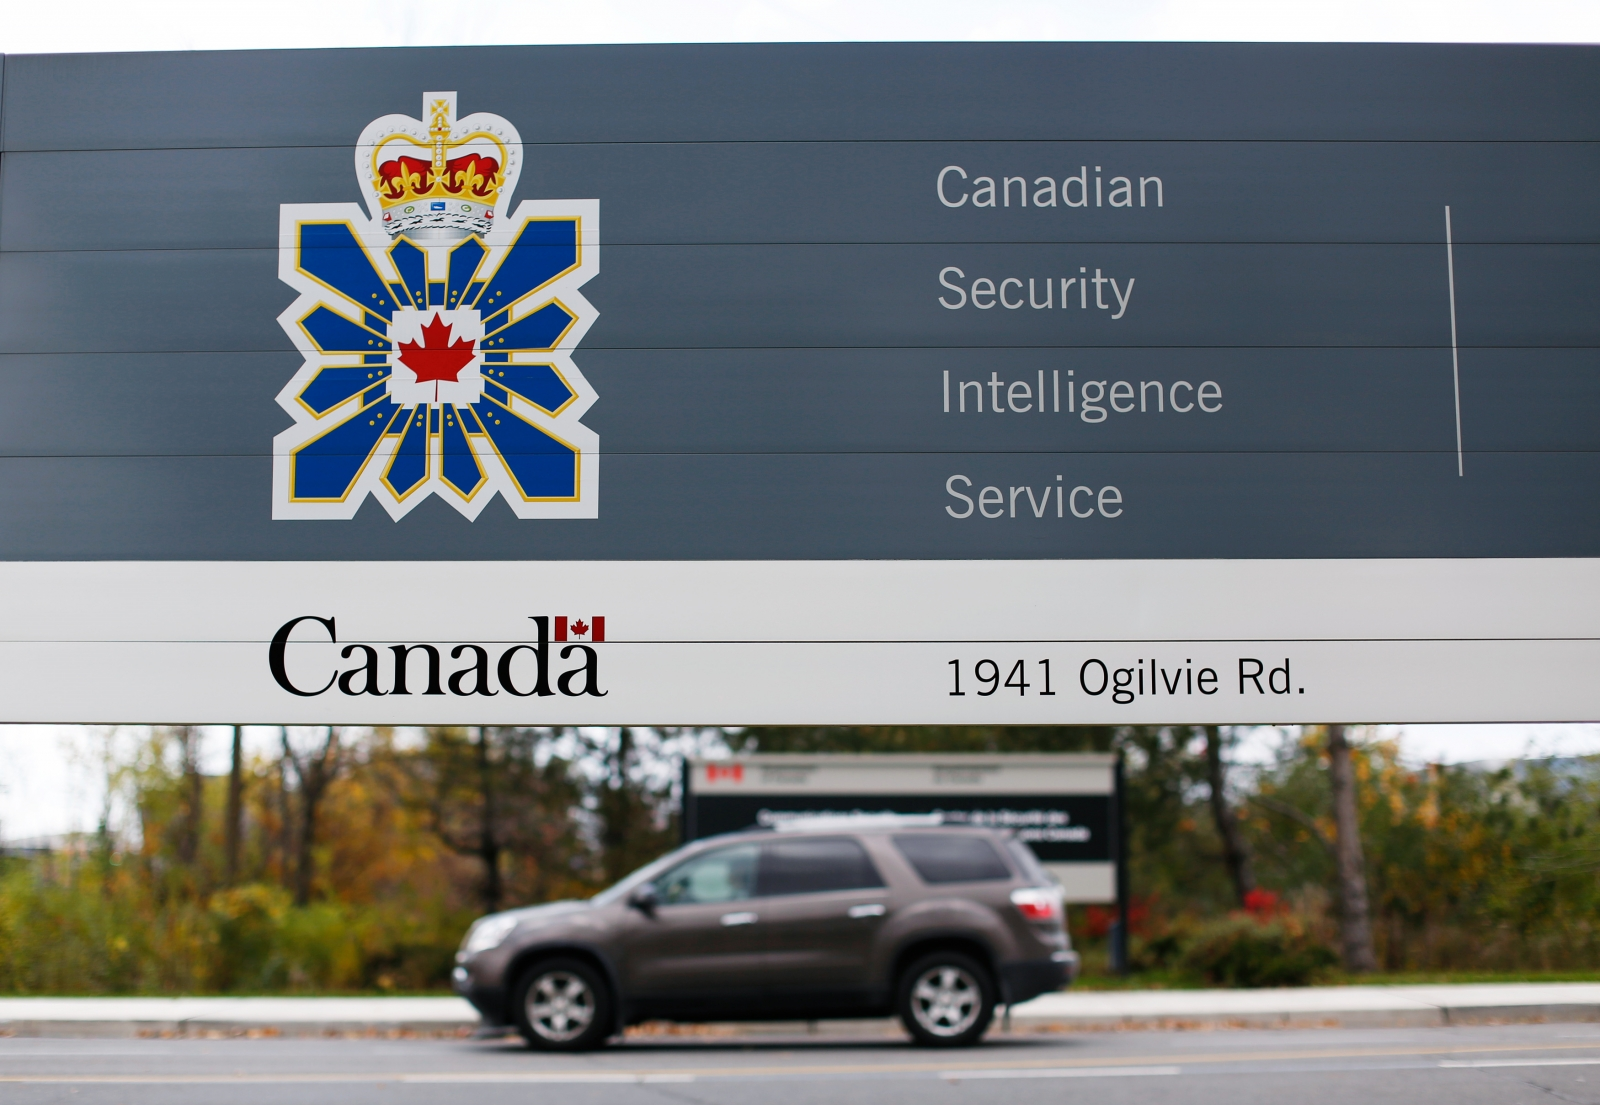 Canadian Security Intelligence Service